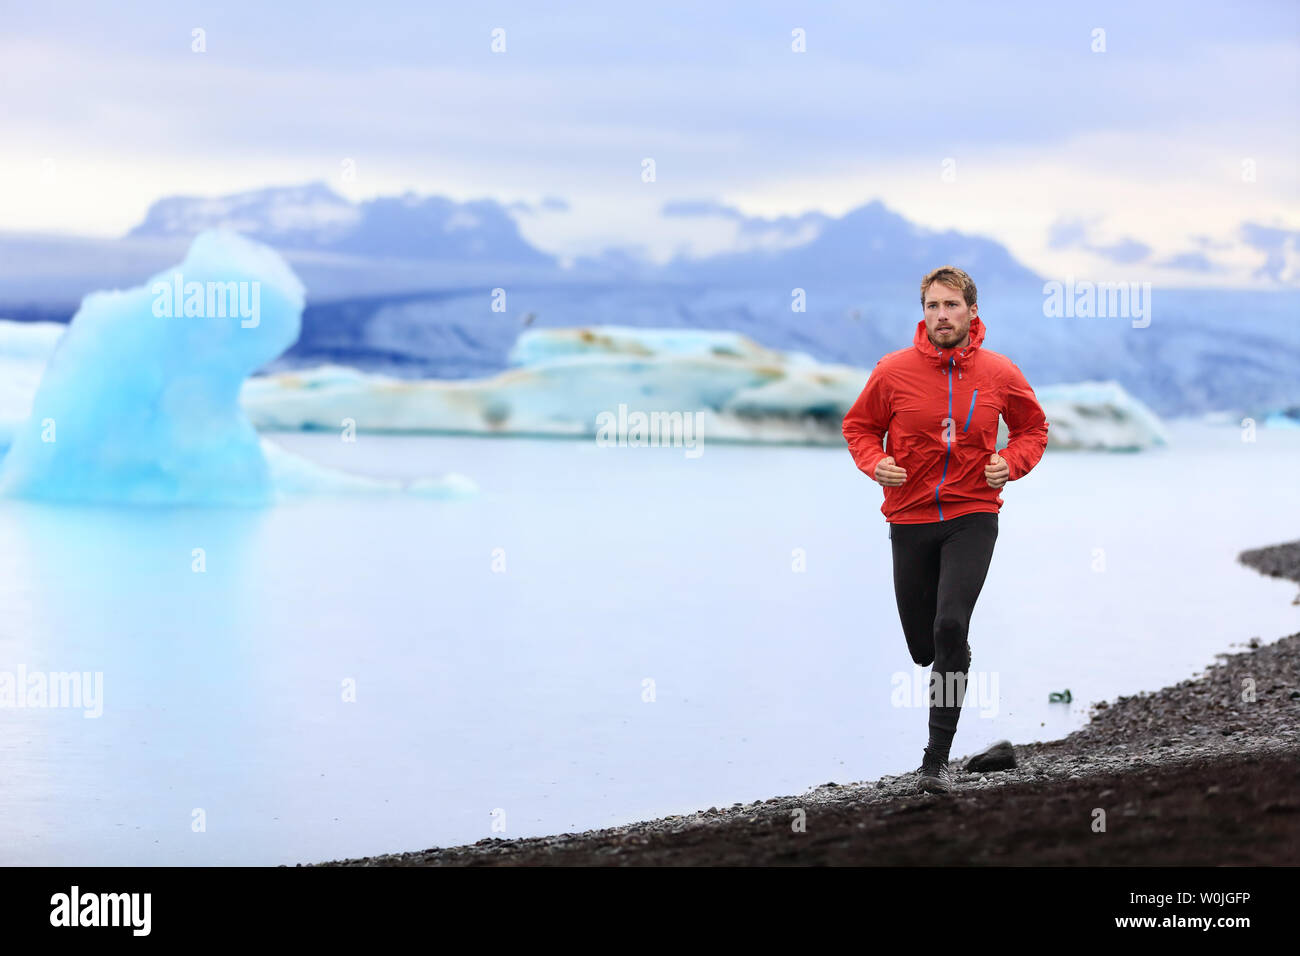 Running man. Trail runner training for marathon run in beautiful nature landscape. Fit male athlete jogging and cross country running by icebergs in Jokulsarlon glacial lake in Iceland. Stock Photo